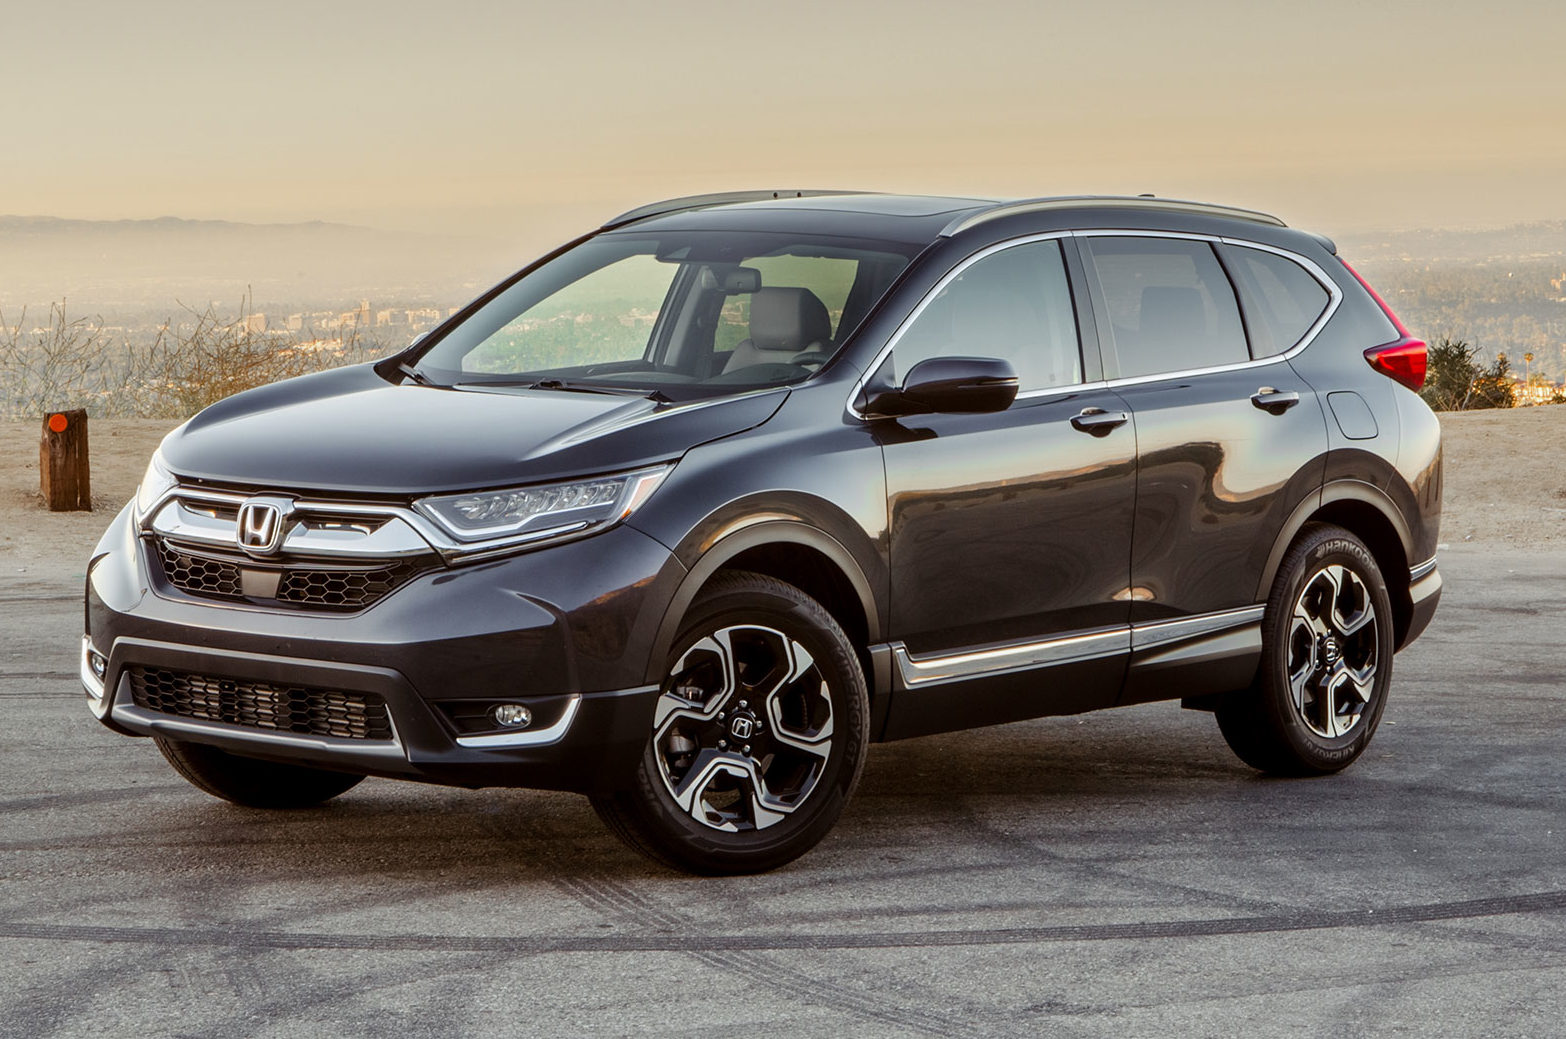 2018 honda cr v price goes up slightly automobile magazine for Honda crv 2017 vs 2018